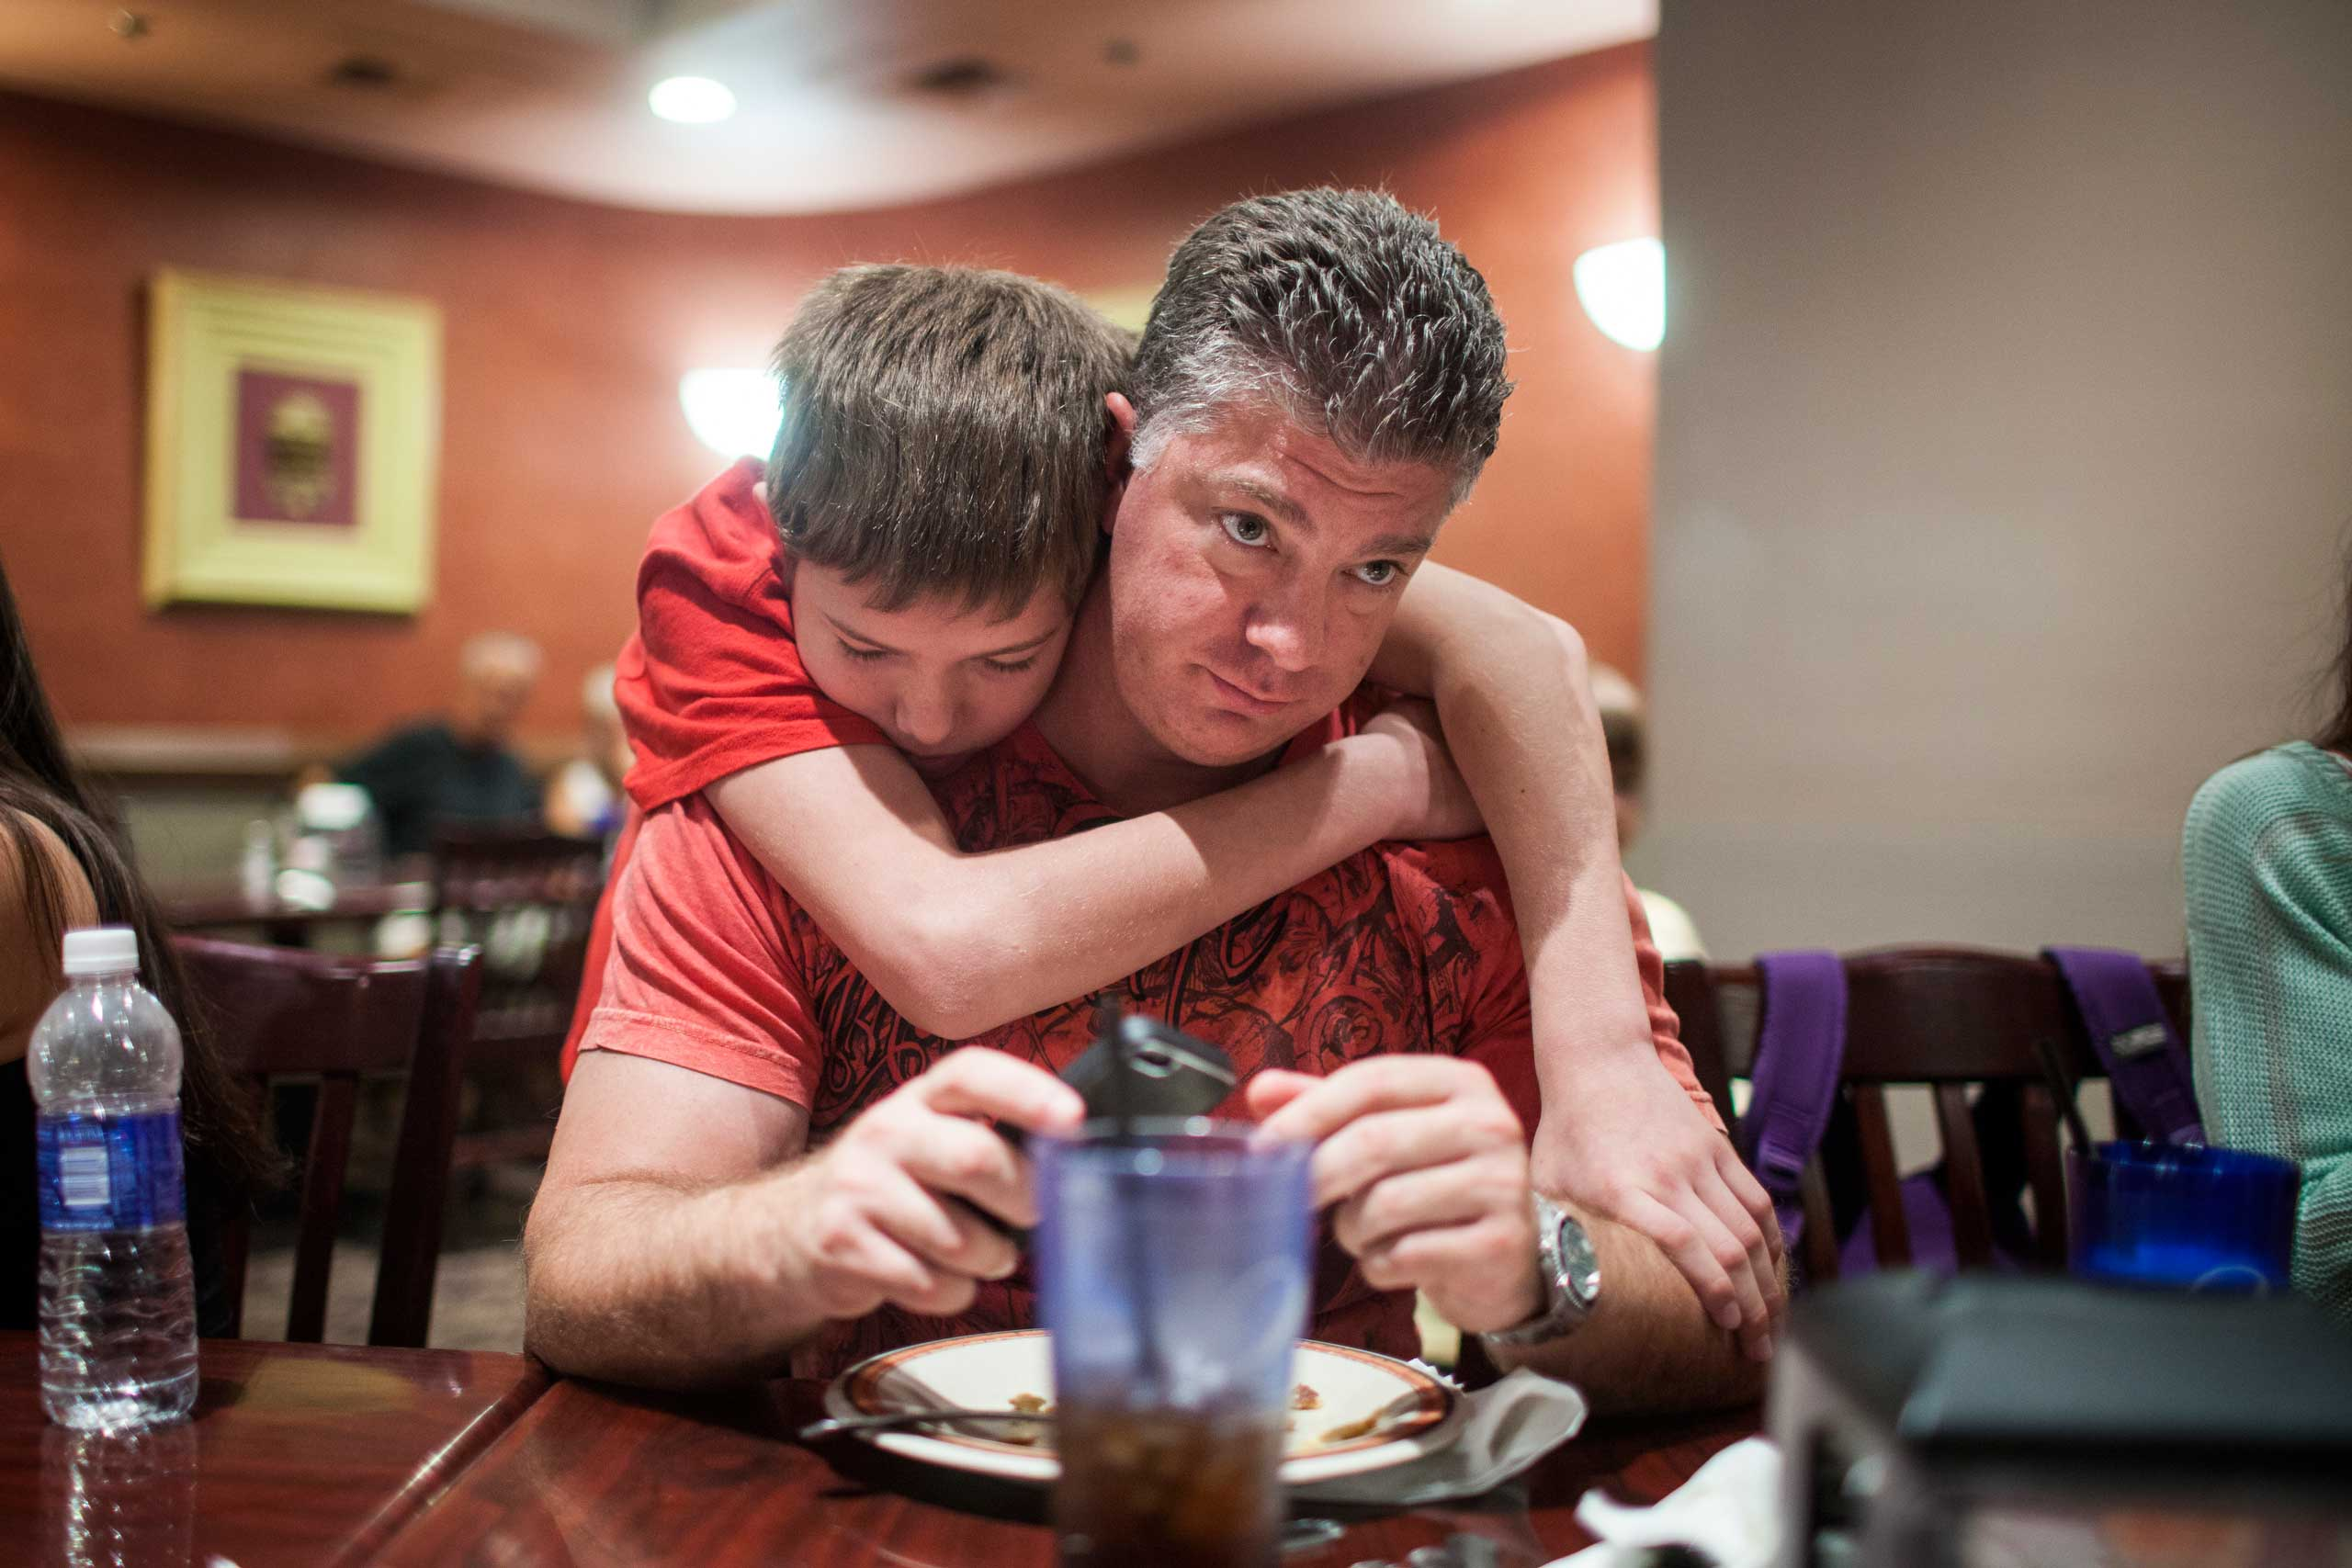 Mixed martial arts fighter Cade Rogue, 9, hugs his dad Jason, before fighting in the octagon in a United States Fight League All-star Pankration show at Blue Water Casino in Parker, Arizona, Oct. 2013.